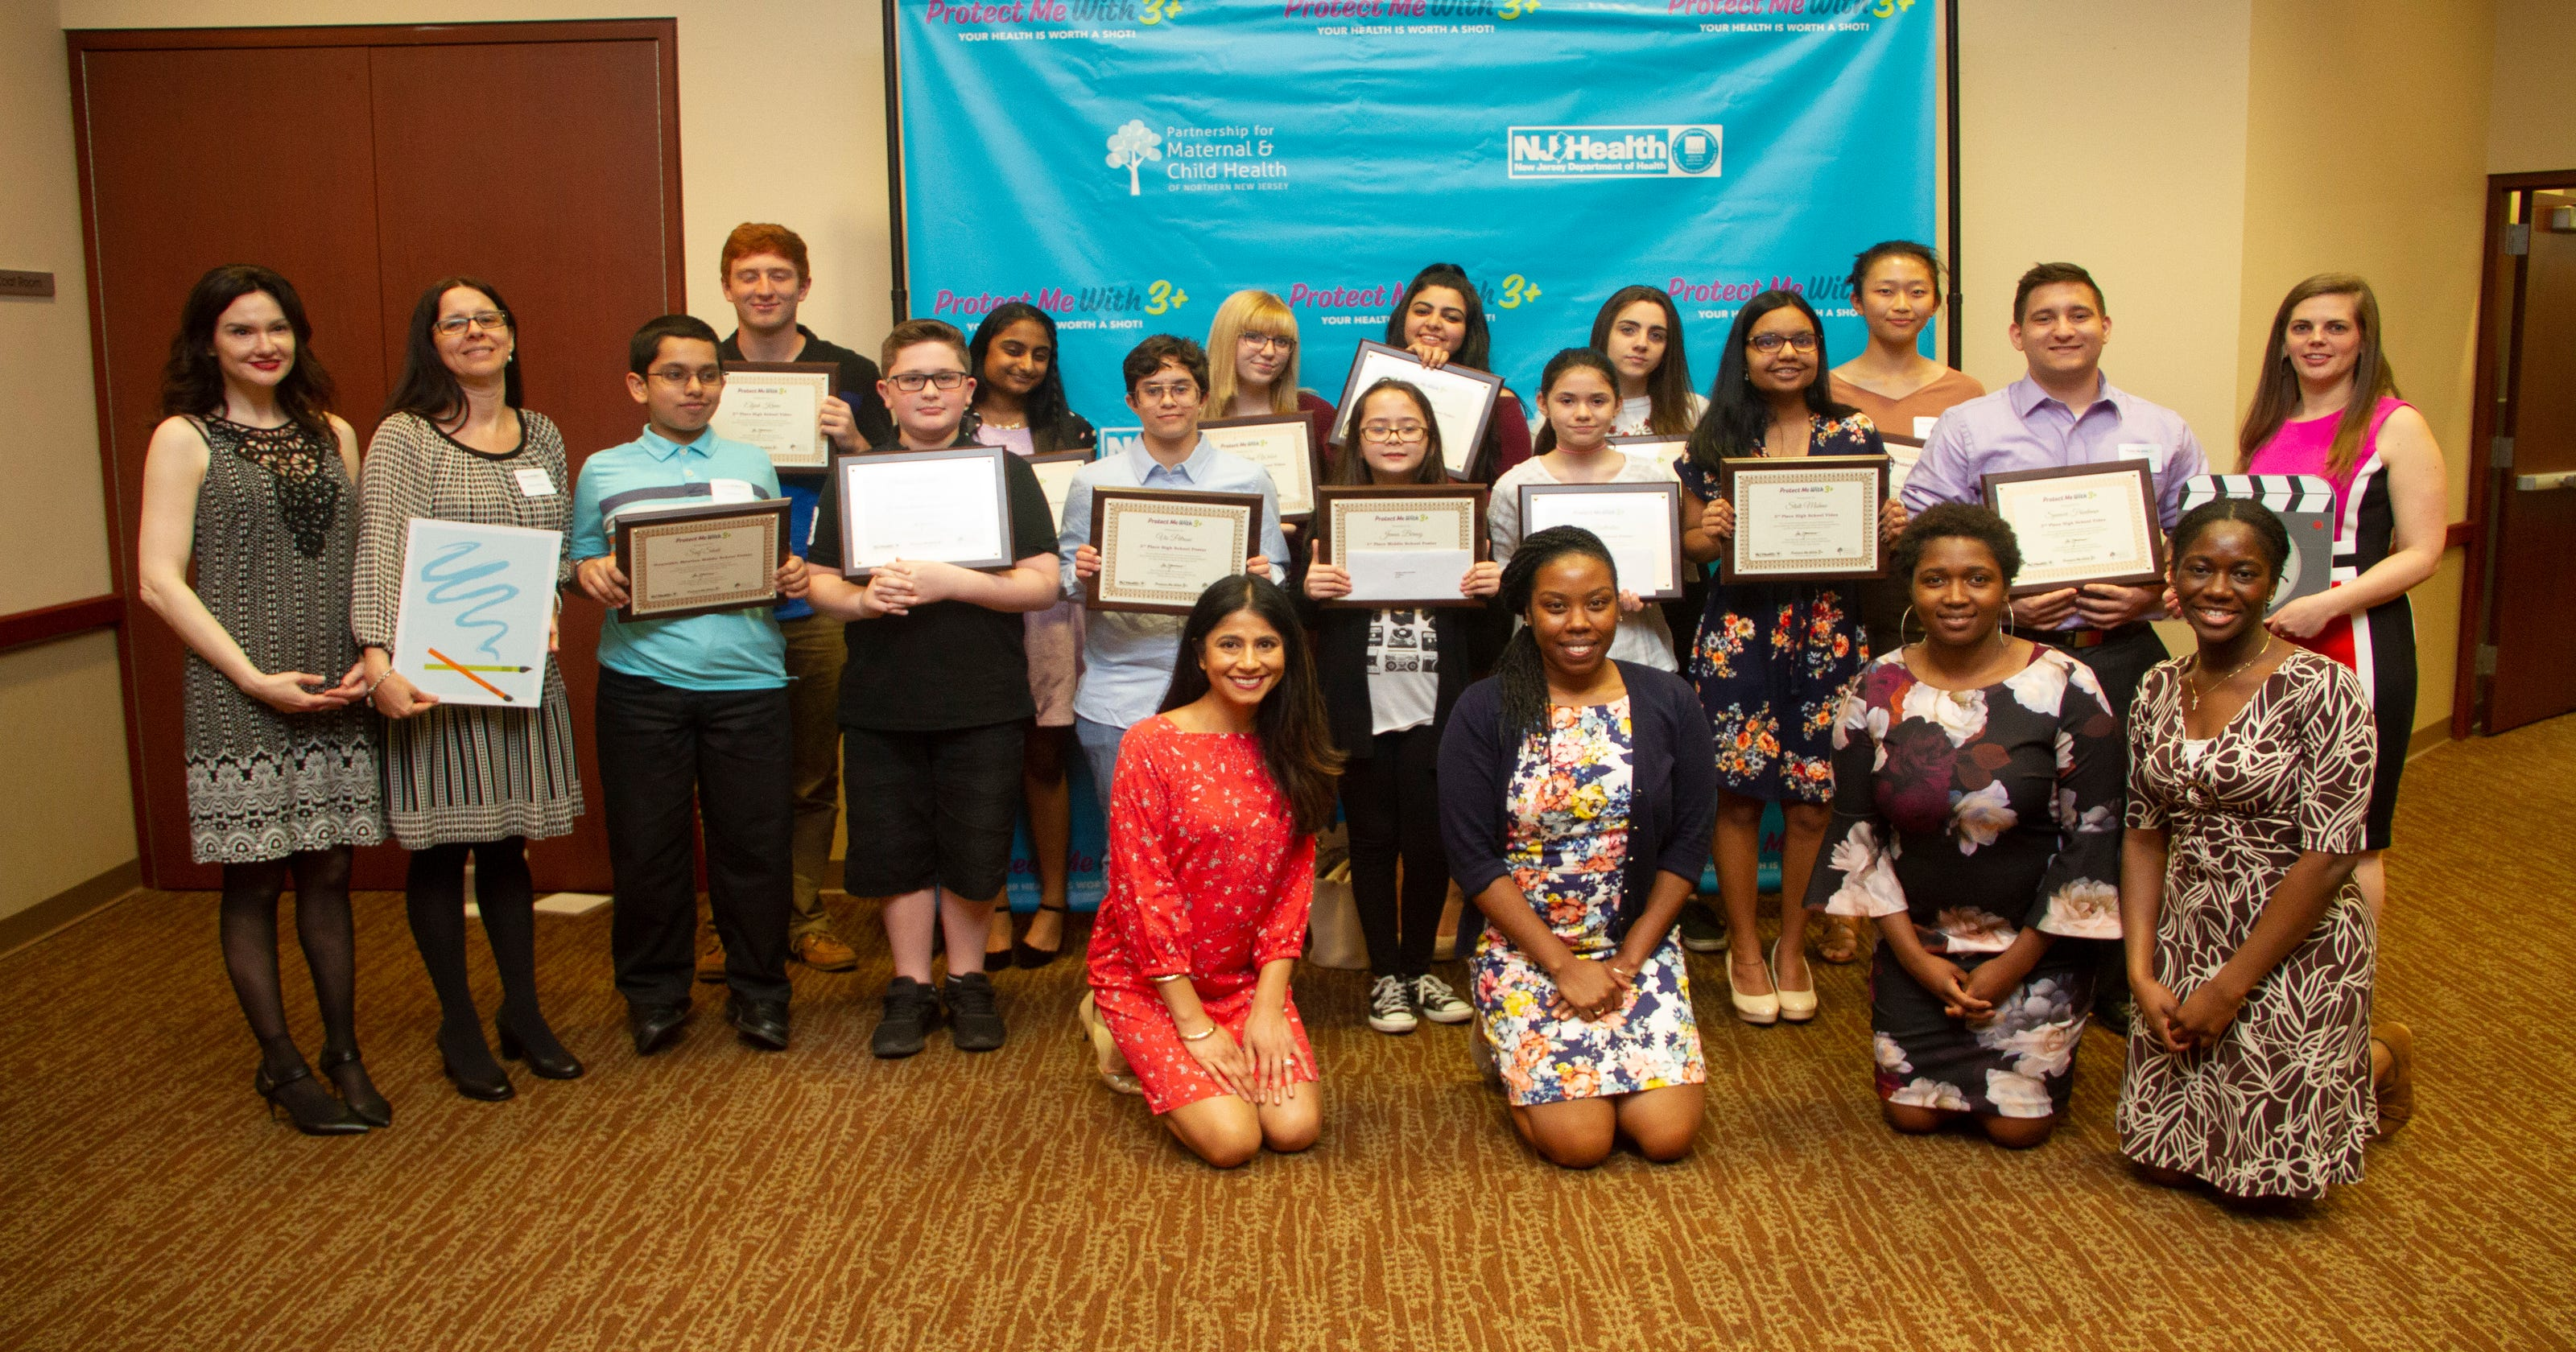 Pallone honors top district students for education and arts achievements